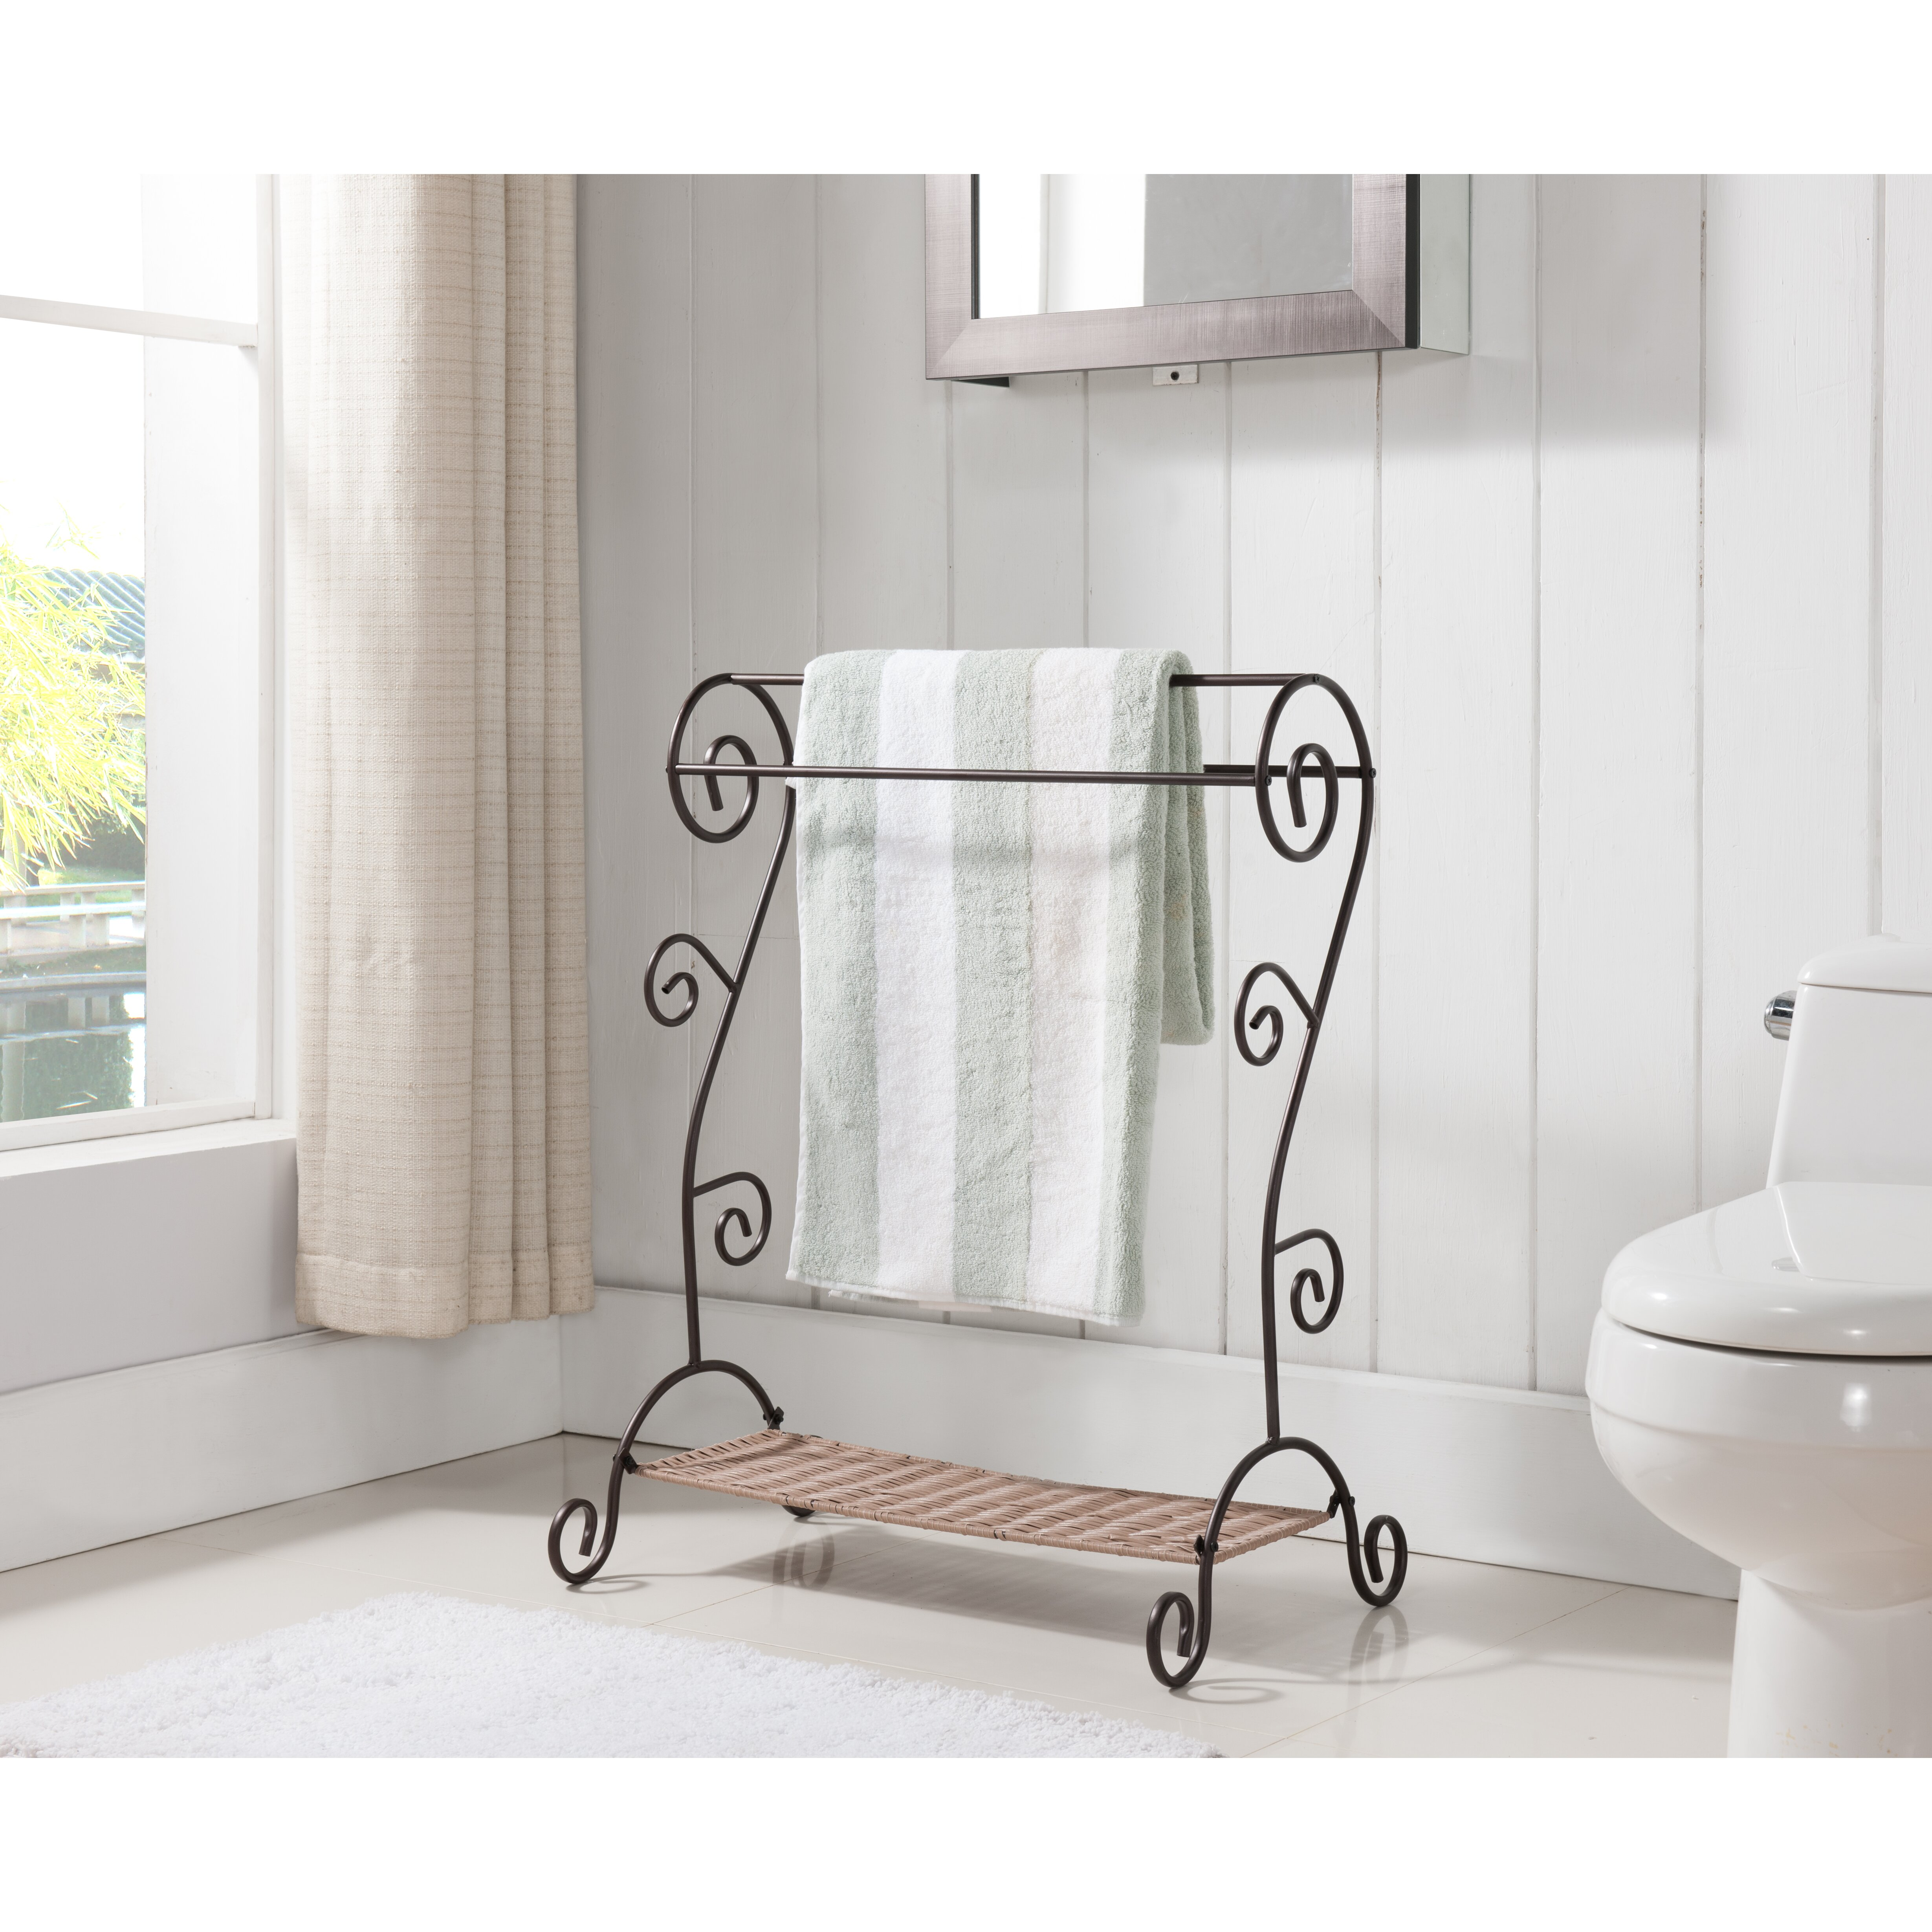 Inroom designs towel rack wayfair In room designs